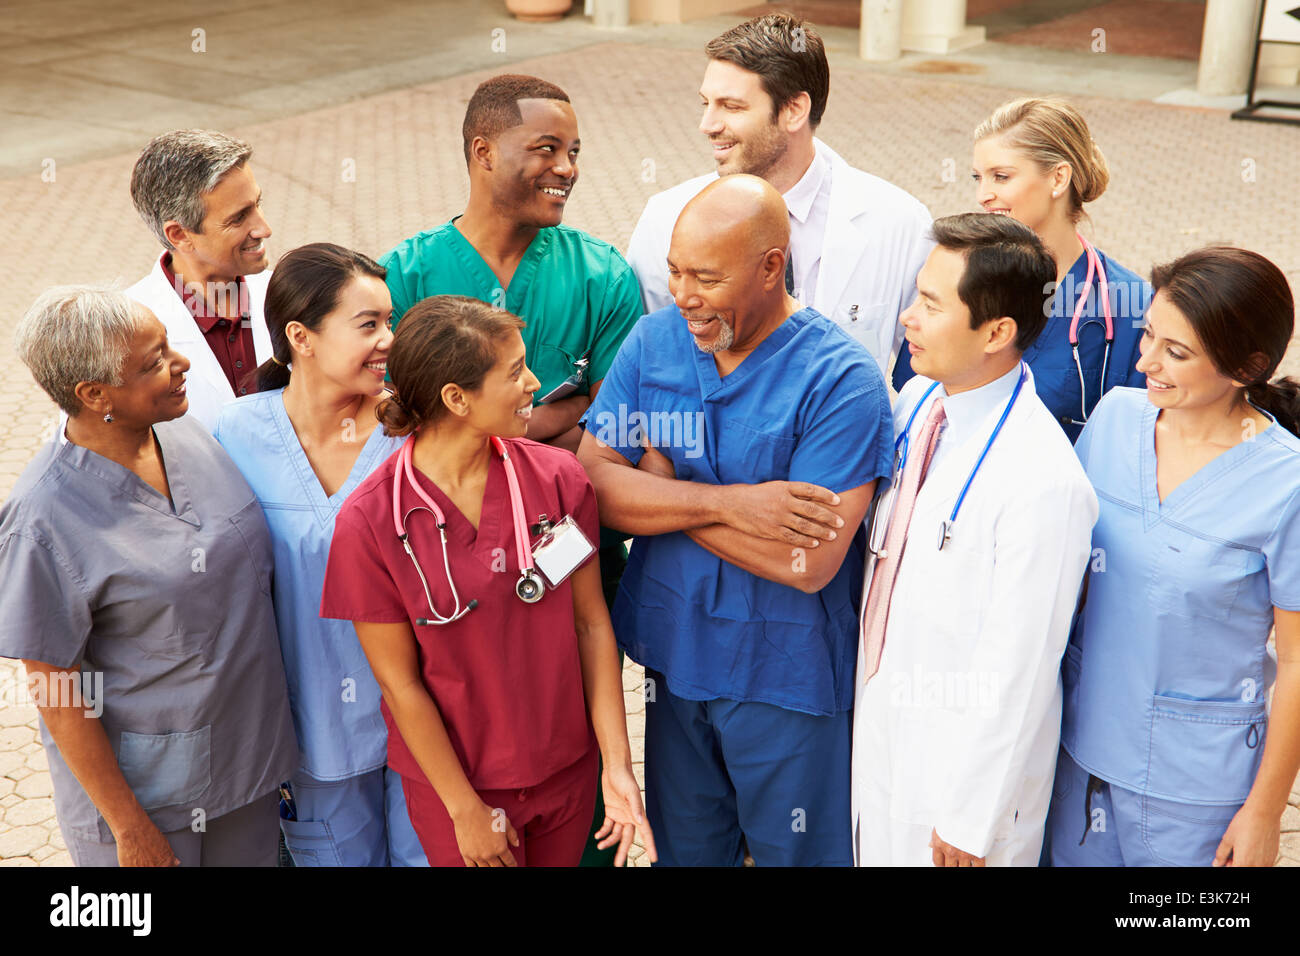 Outdoor Group Shot Of Medical Team - Stock Image